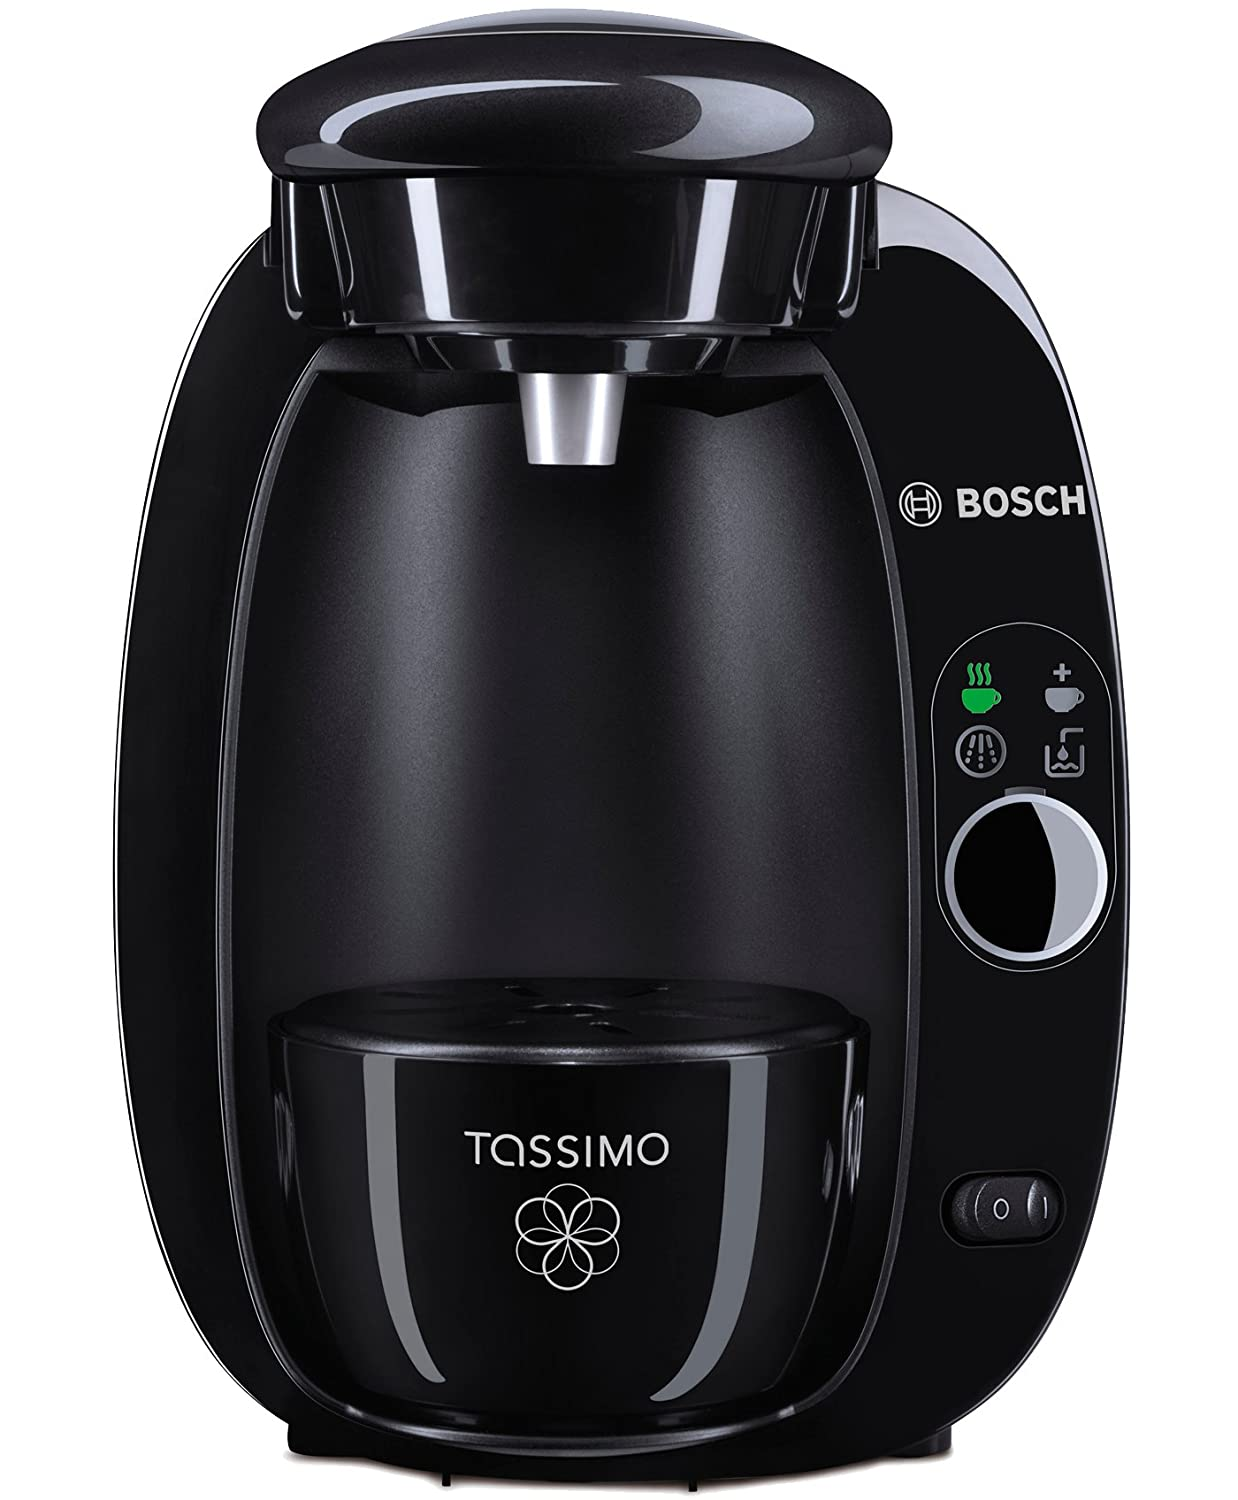 bosch tassimo t20 k kkenredskaber. Black Bedroom Furniture Sets. Home Design Ideas